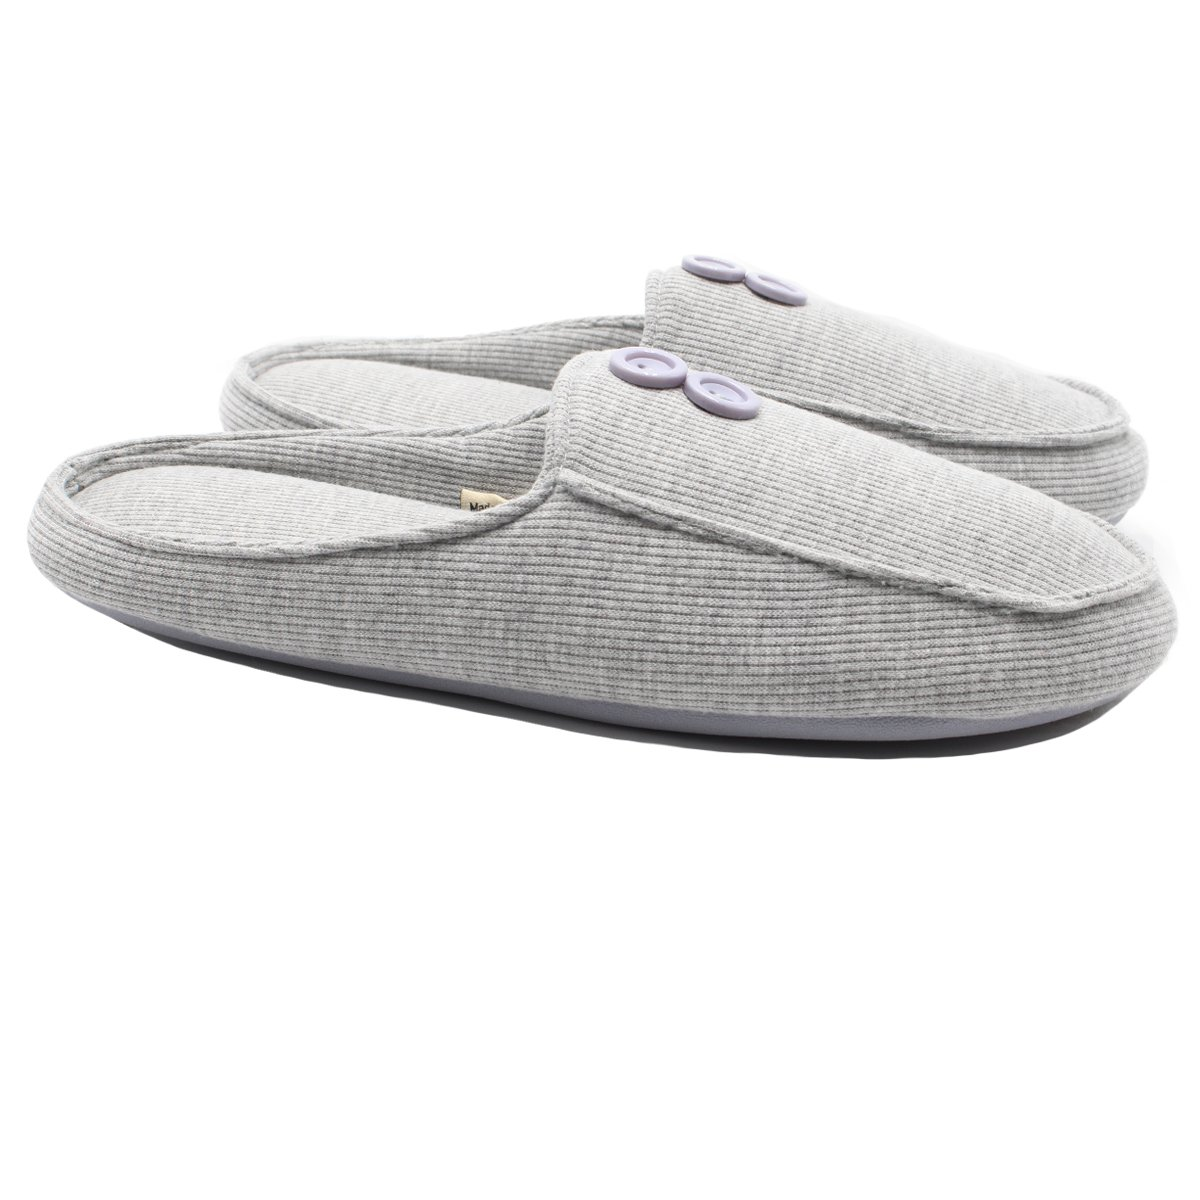 Ofoot Women's Memory Foam Indoor Slippers,Organic Cotton Closed Toe,Anti-Slip TPR Sole with Buttons (7-8 B(M) US, Grey)